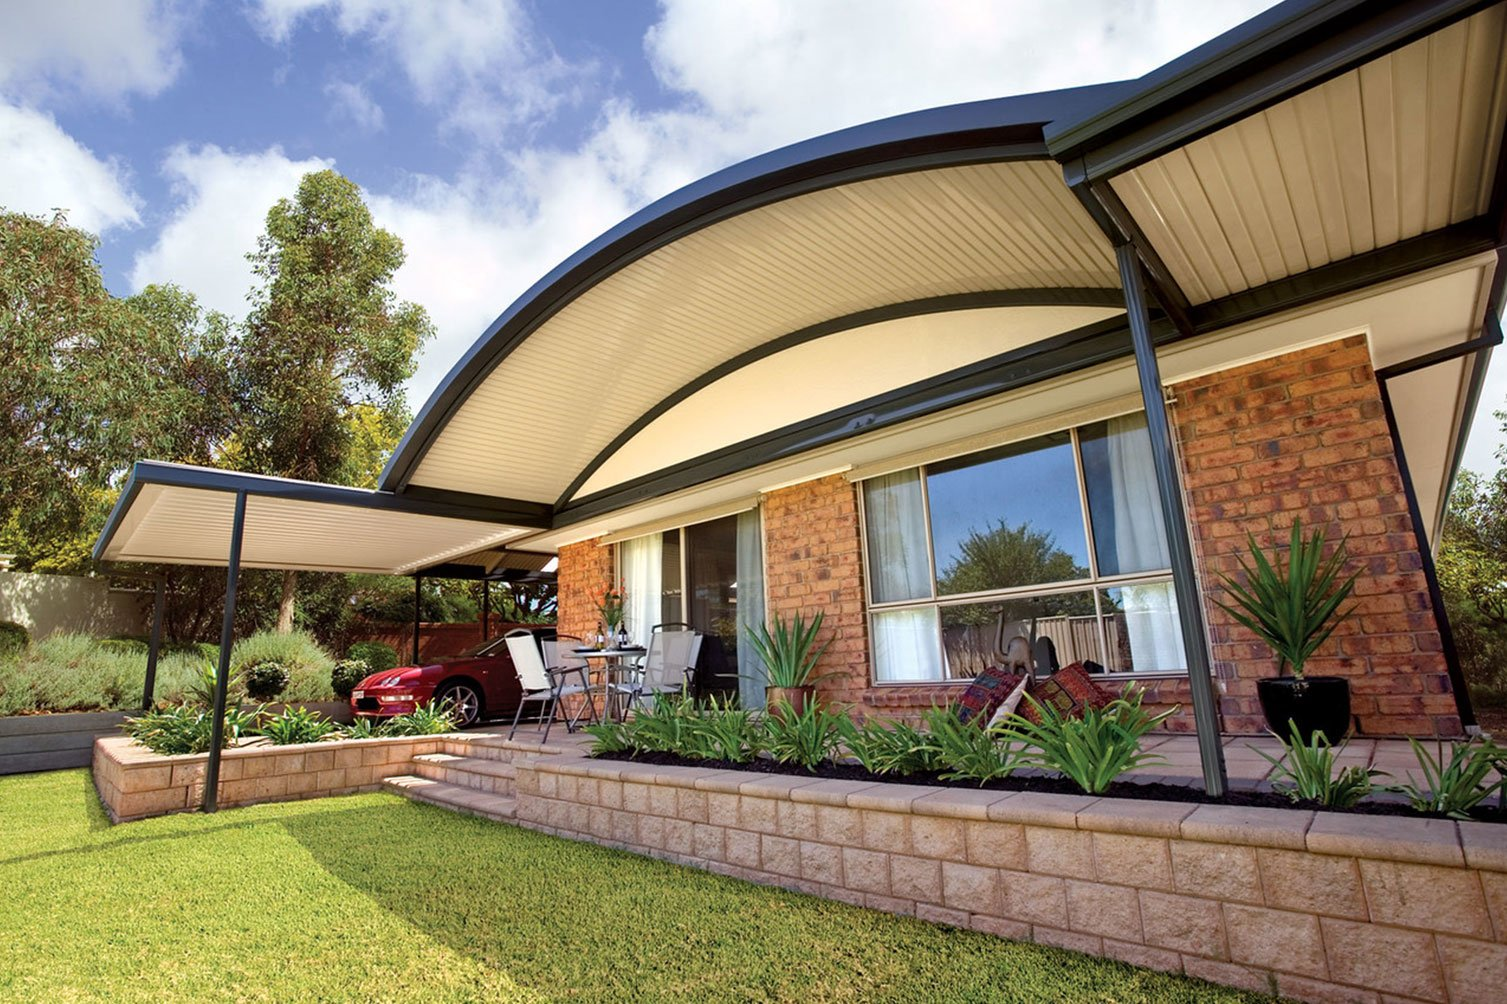 An inviting view of a gabled roof patio in Murwillumbah